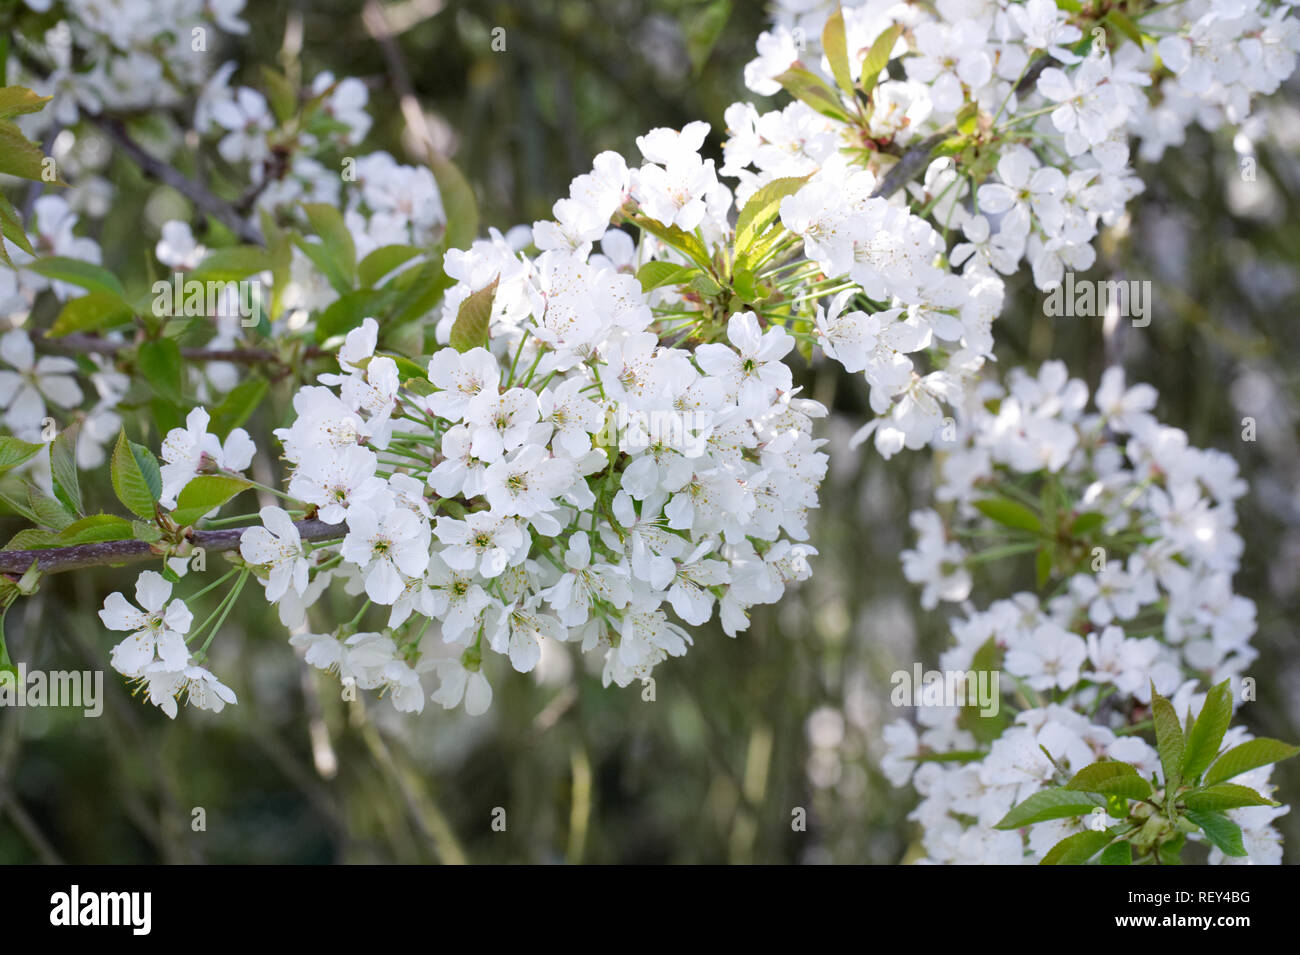 Sweet Cherry 'William's seedling' blossom in Spring. - Stock Image